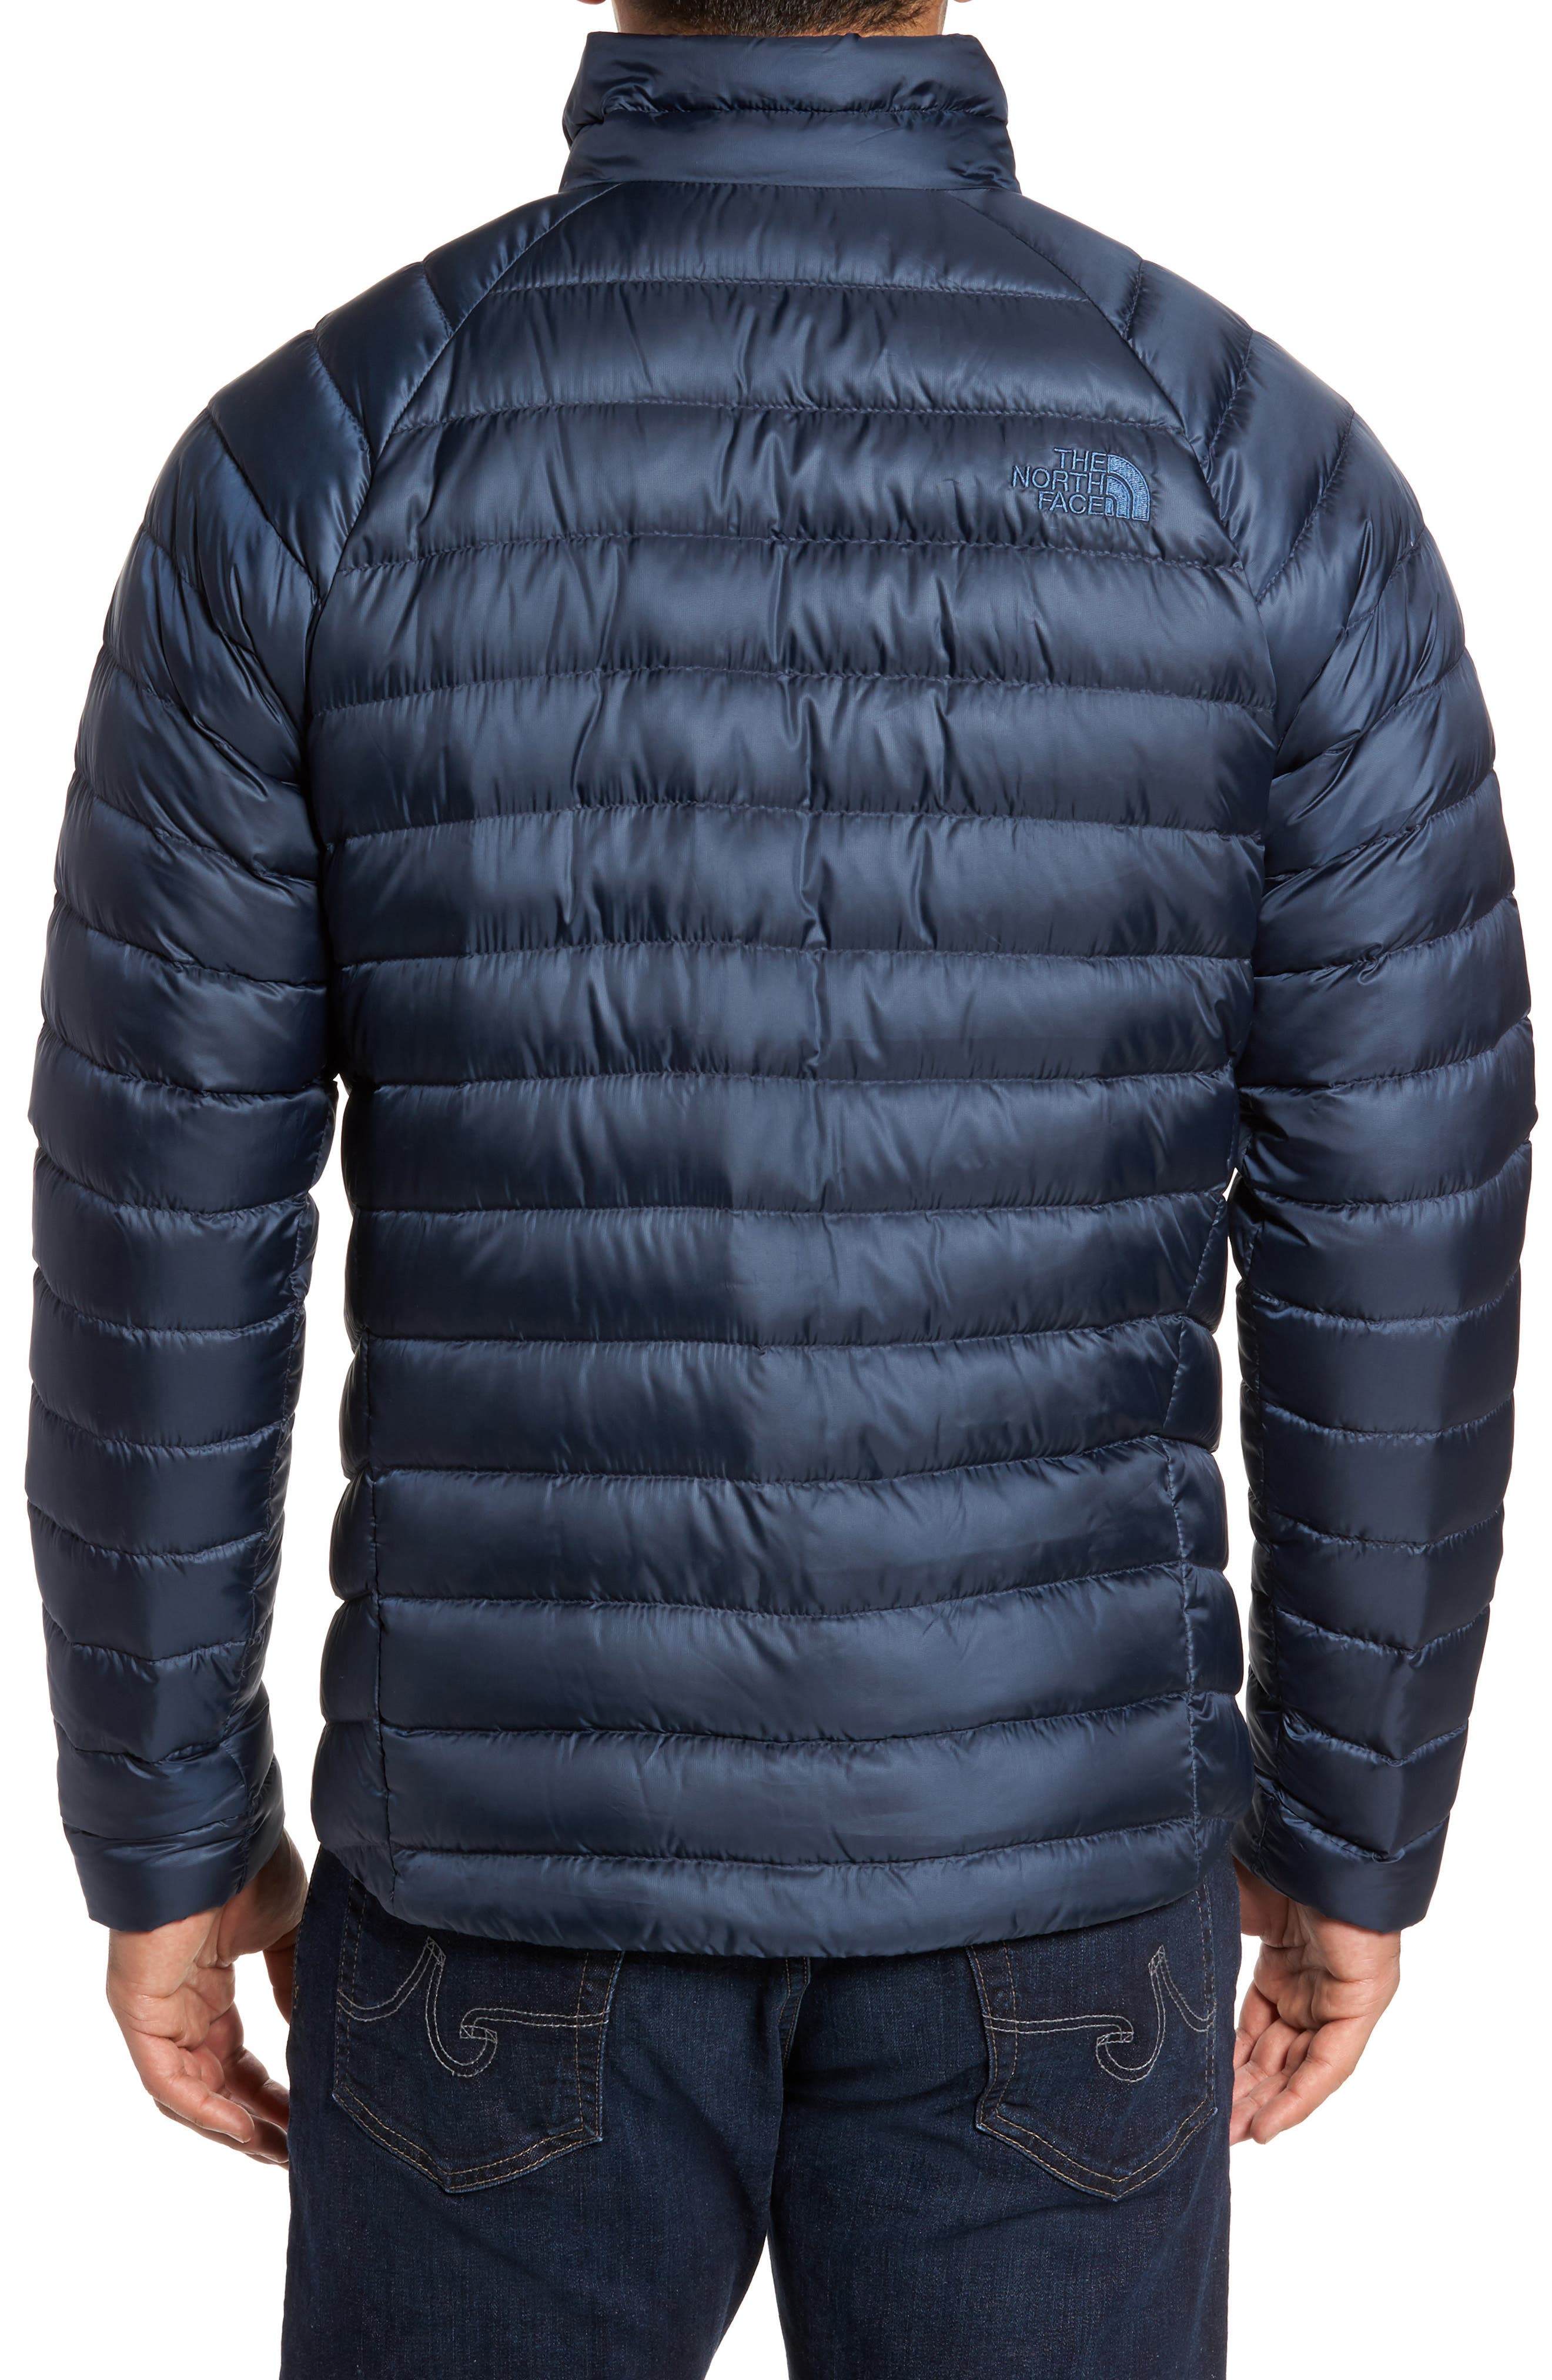 Trevail Water Repellent Packable Down Jacket,                             Alternate thumbnail 2, color,                             Urban Navy/ Urban Navy